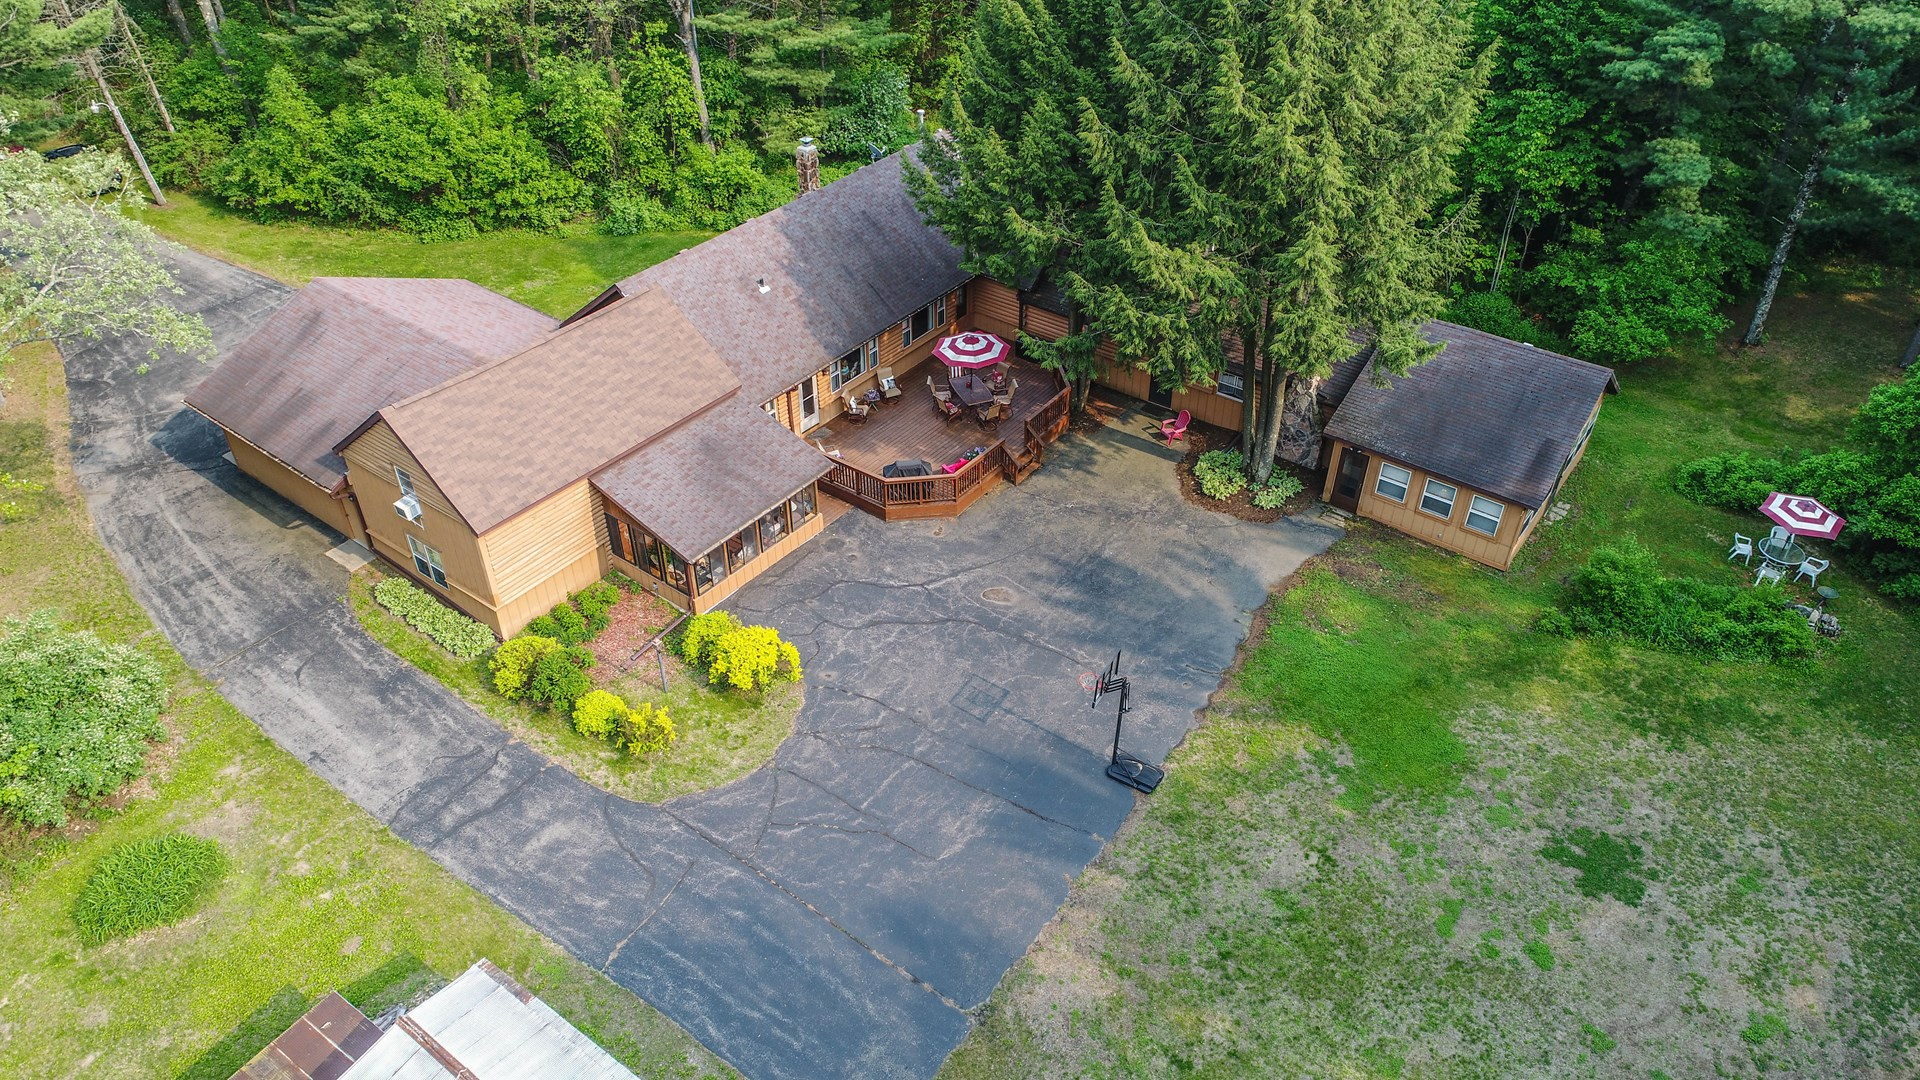 Sweetwood Farm - Recreational Property for sale Waushara CO.